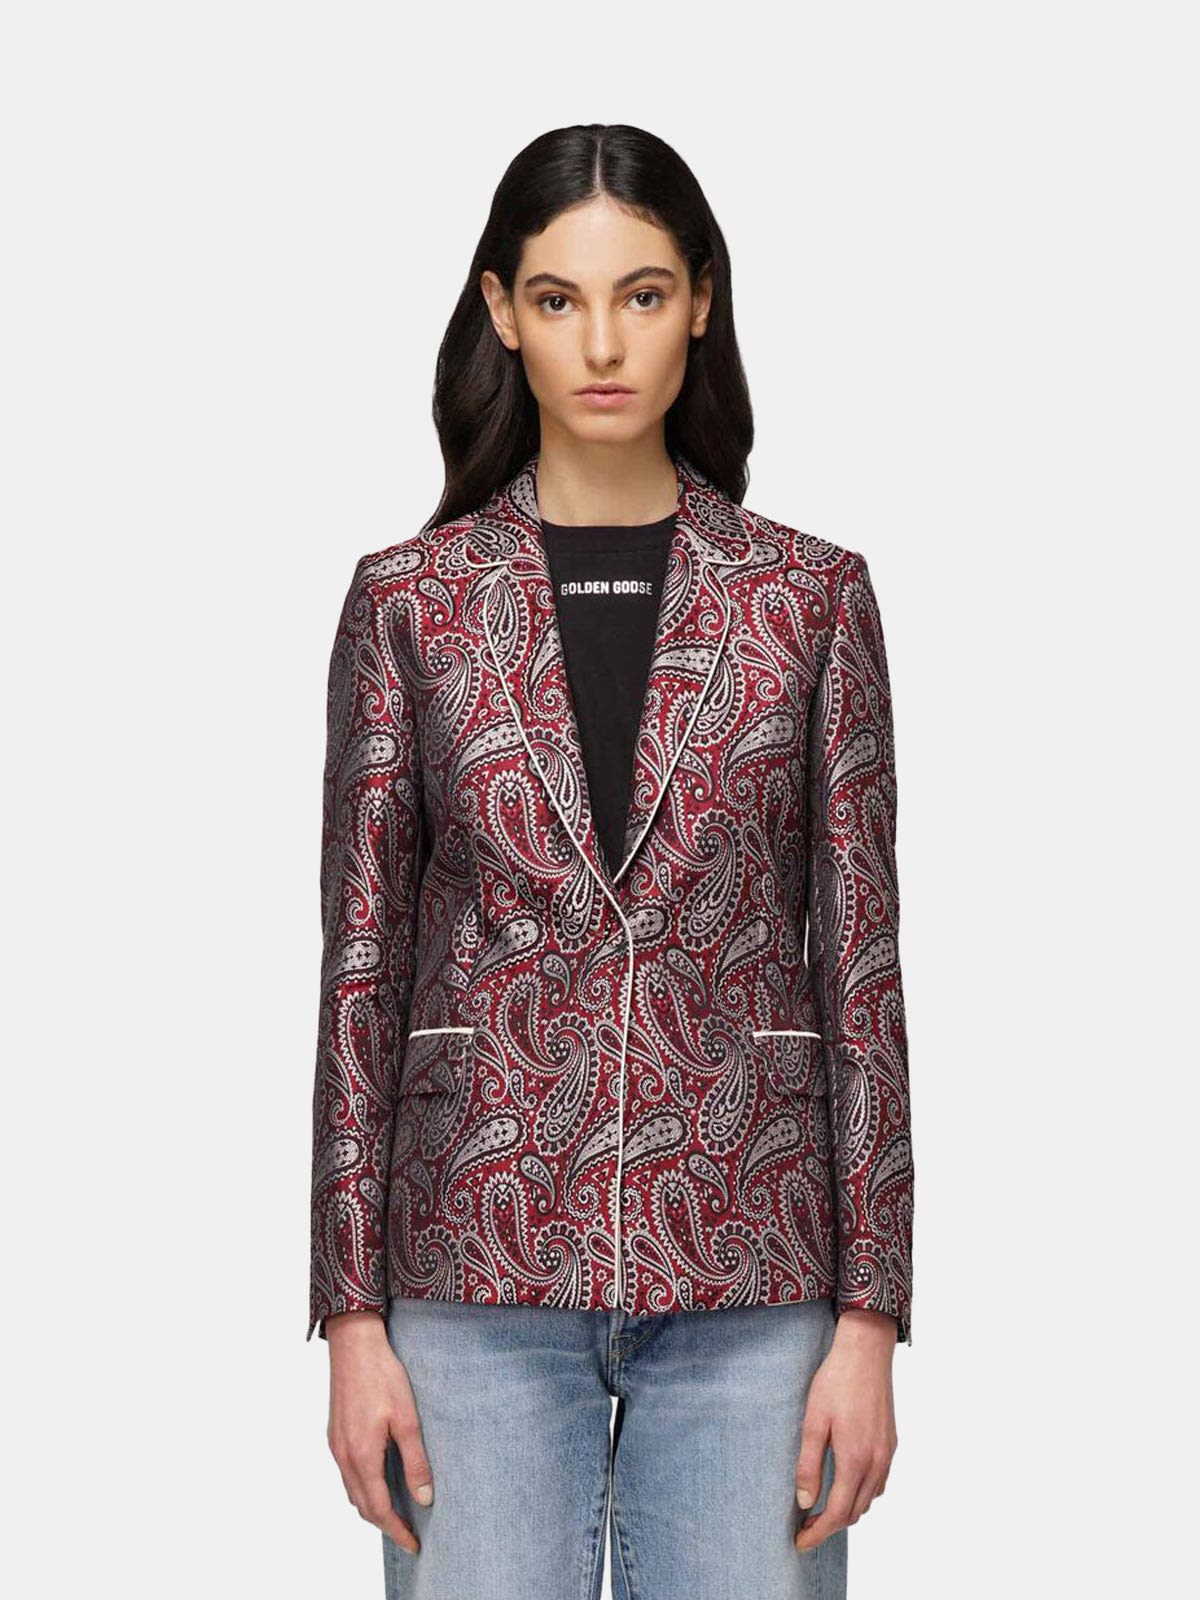 Golden Goose - Venice jacket in jacquard fabric with paisley motif in